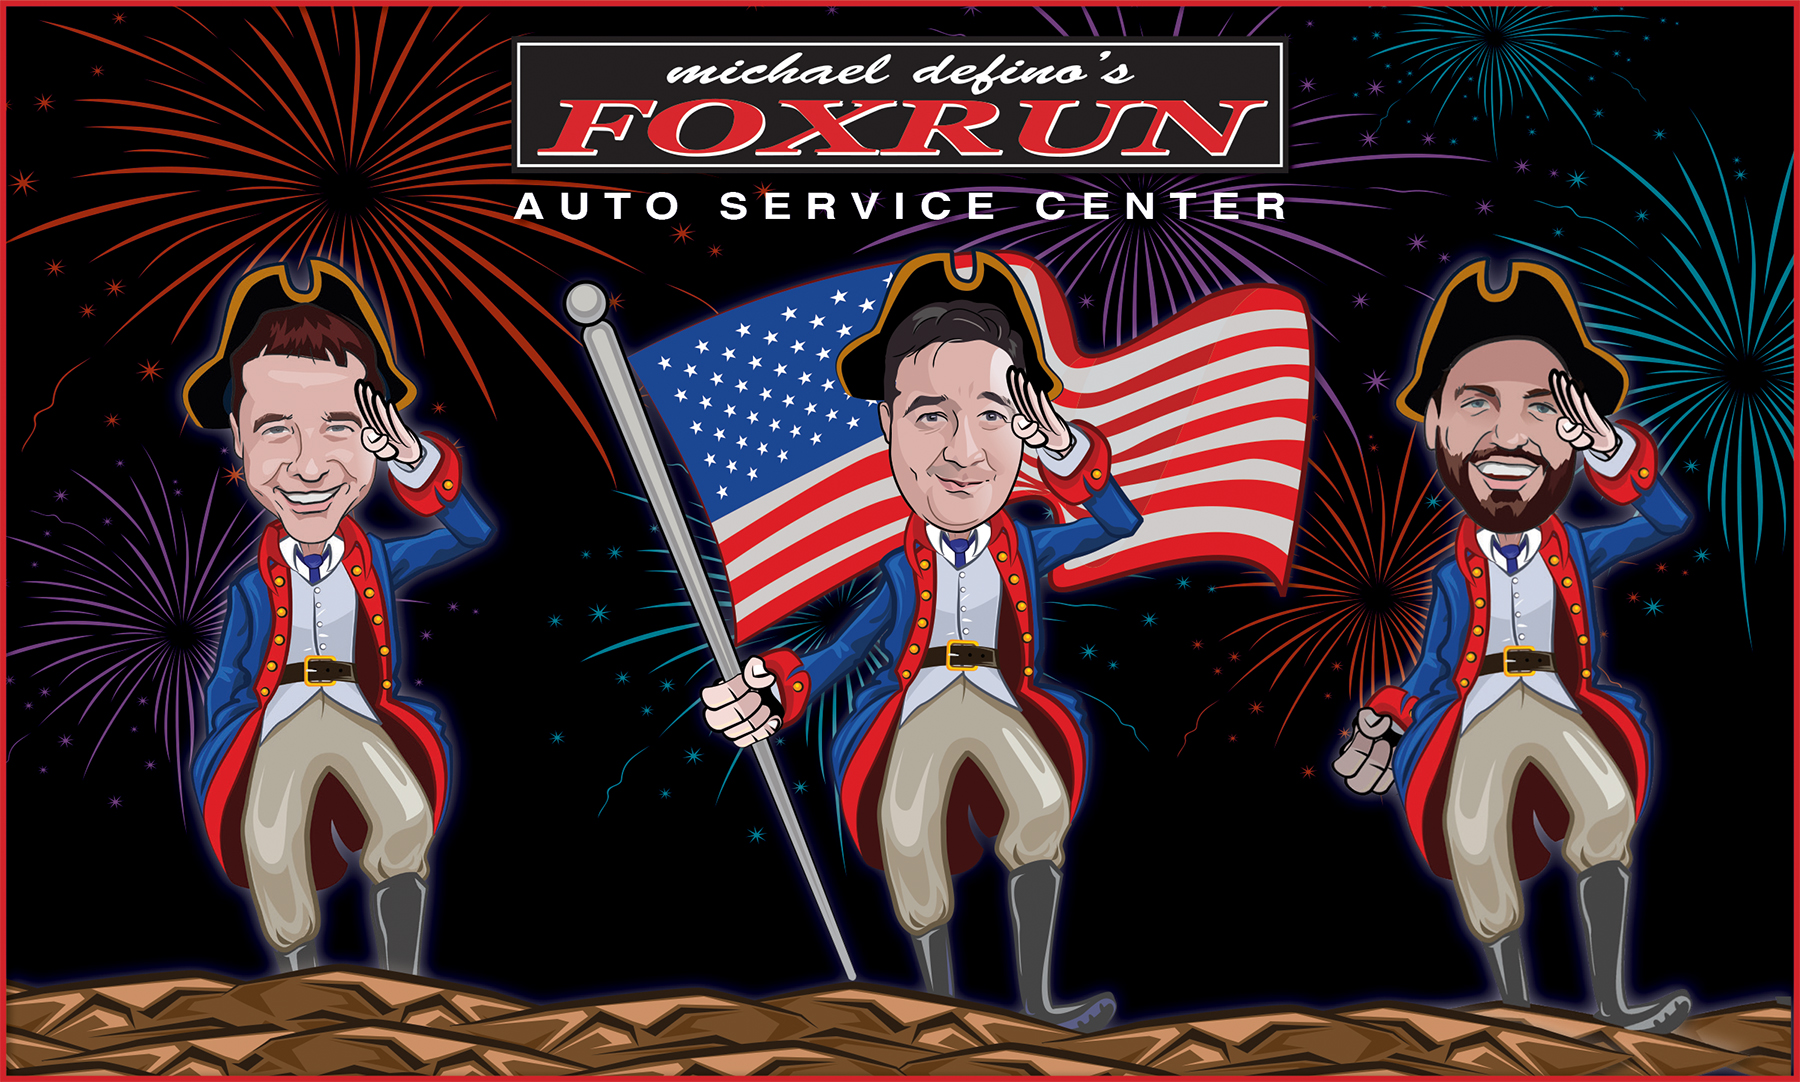 The Spirit of Independence is Alive and Well at Fox Run Auto!